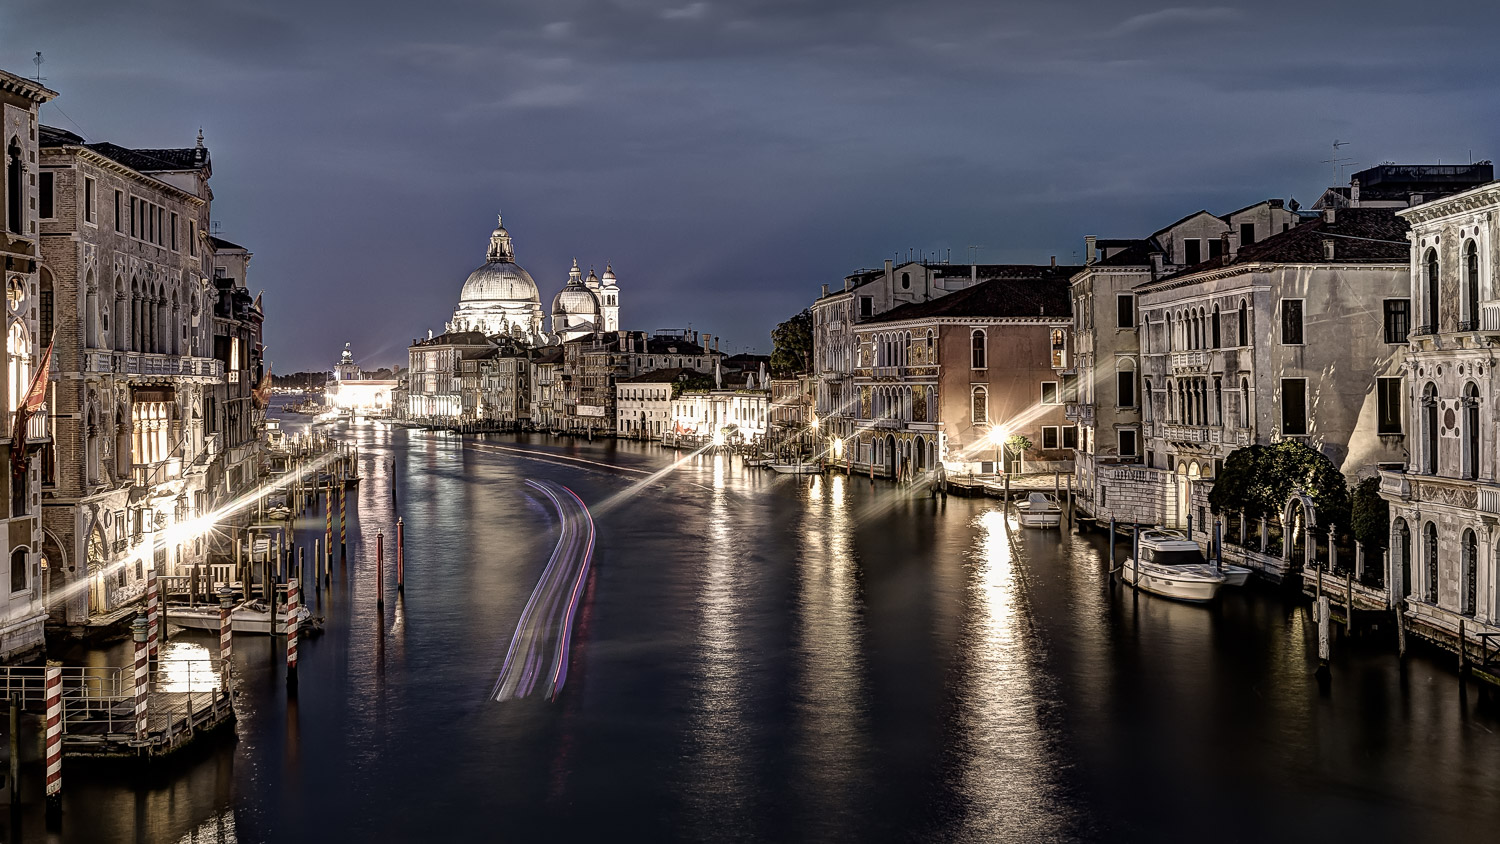 View from Ponte dell' Accademia, Venice, June 2014